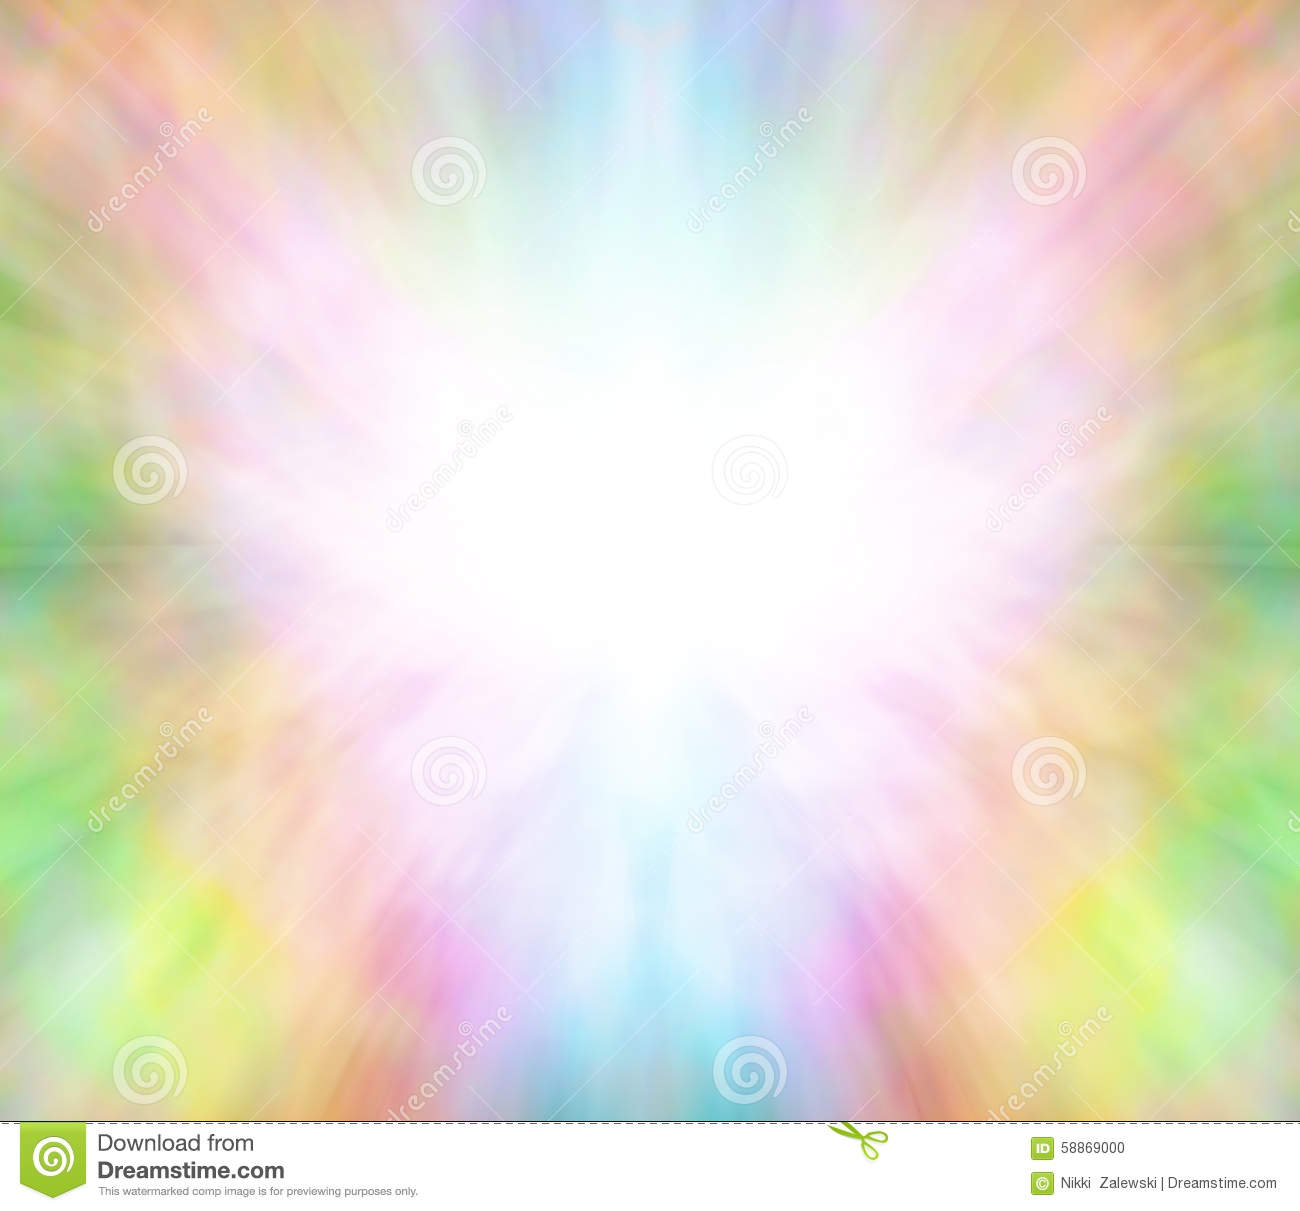 ethereal healing angel light background stock photo image of copy